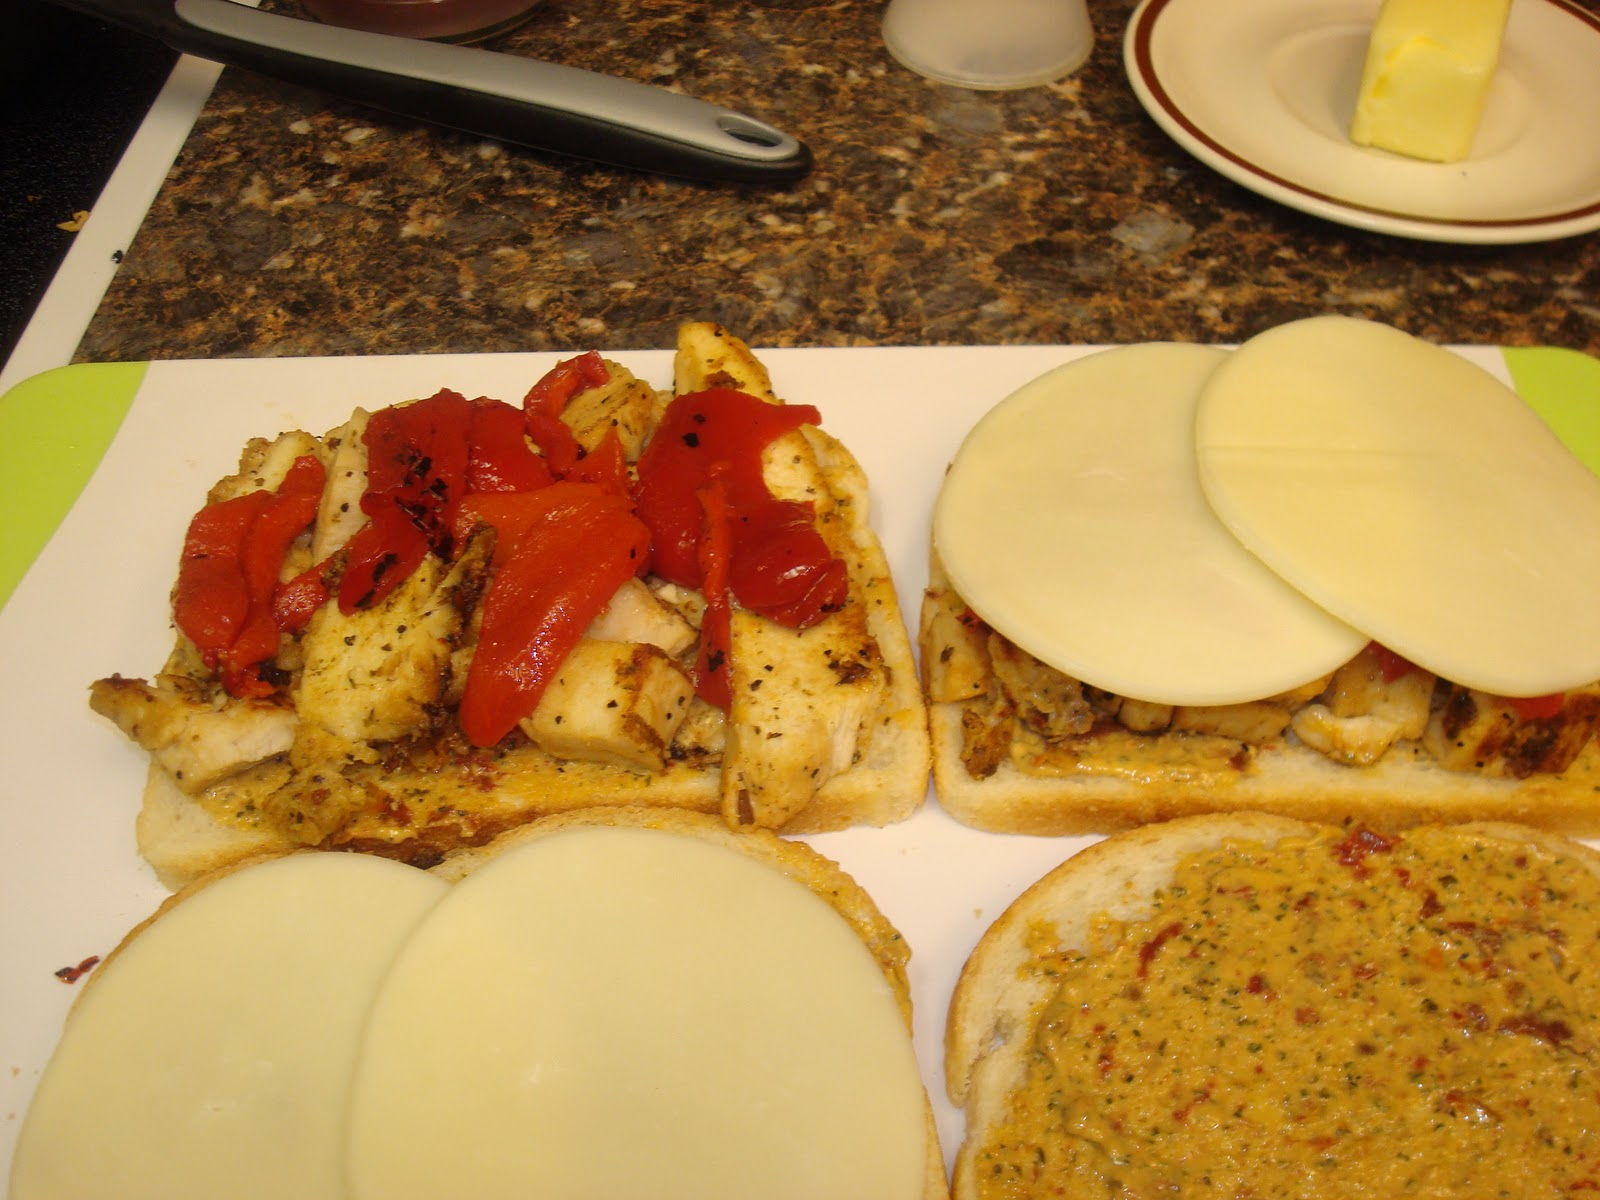 Make lemonade and more!: Grilled Chicken and Roasted Red ...